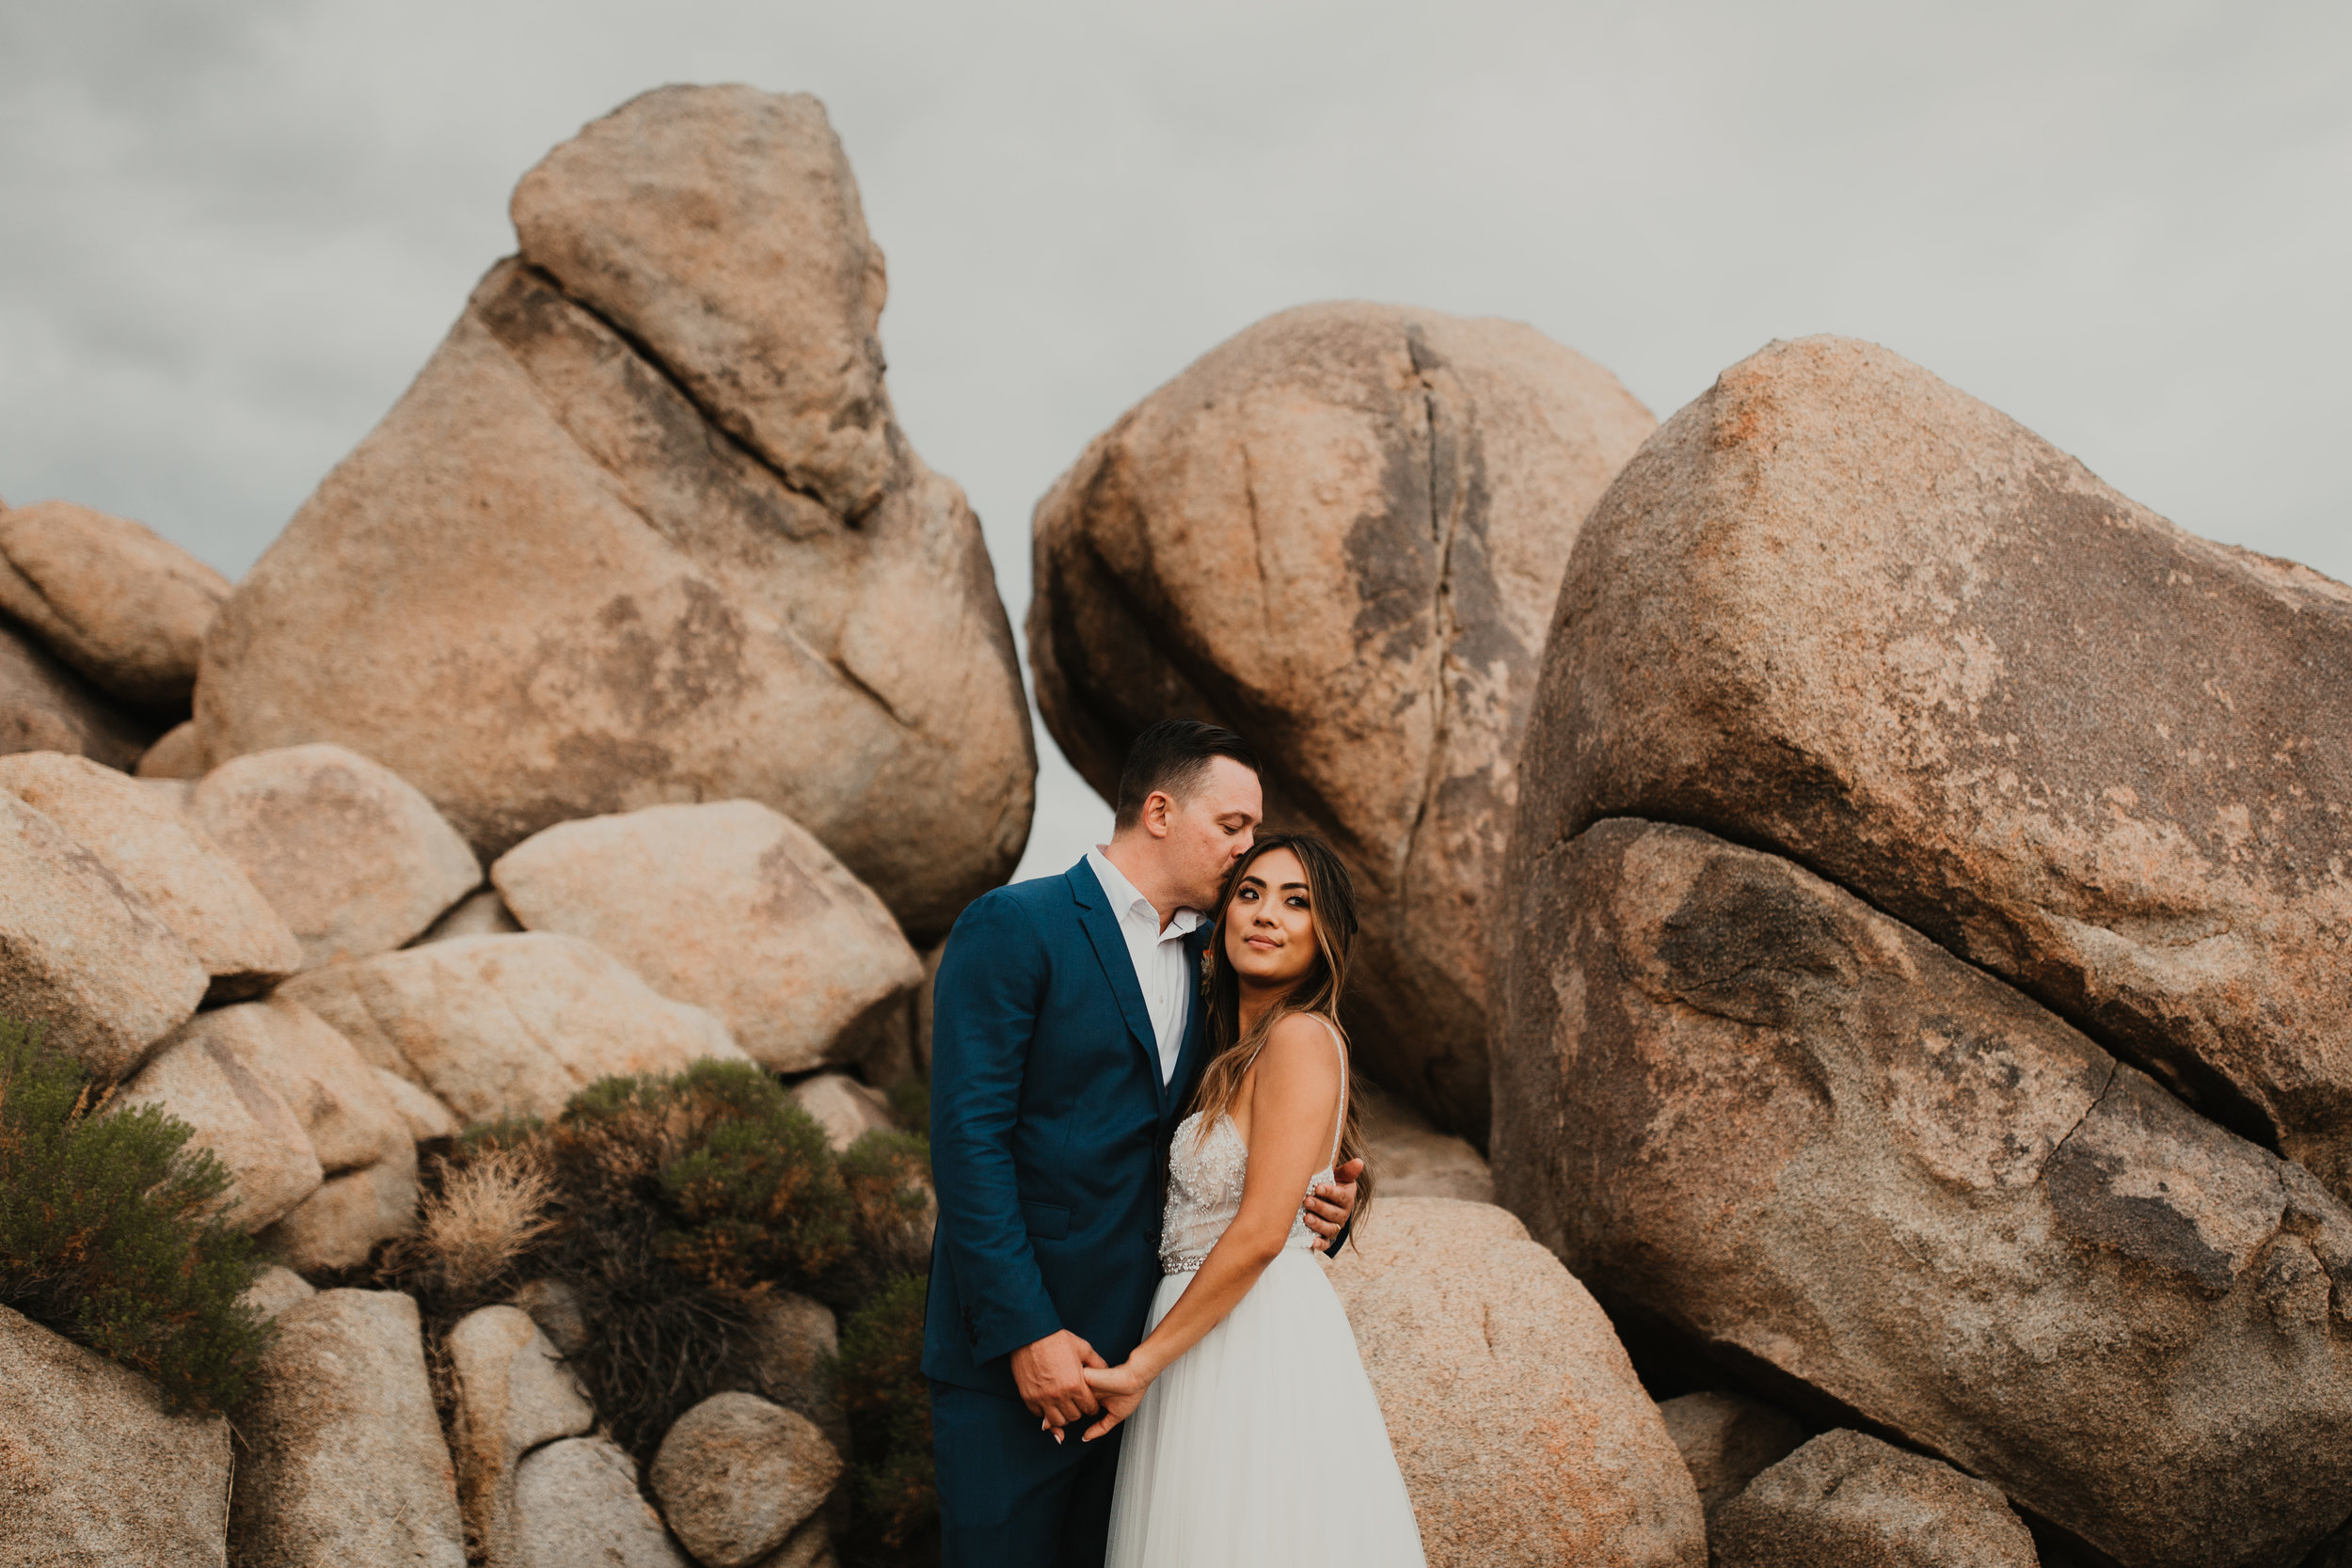 Asian wedding, beautiful bride, outdoor wedding, SoCal wedding, boho wedding. Bridal Hair and makeup by Vanity Belle in Orange County (Costa Mesa) and San Diego (La Jolla)